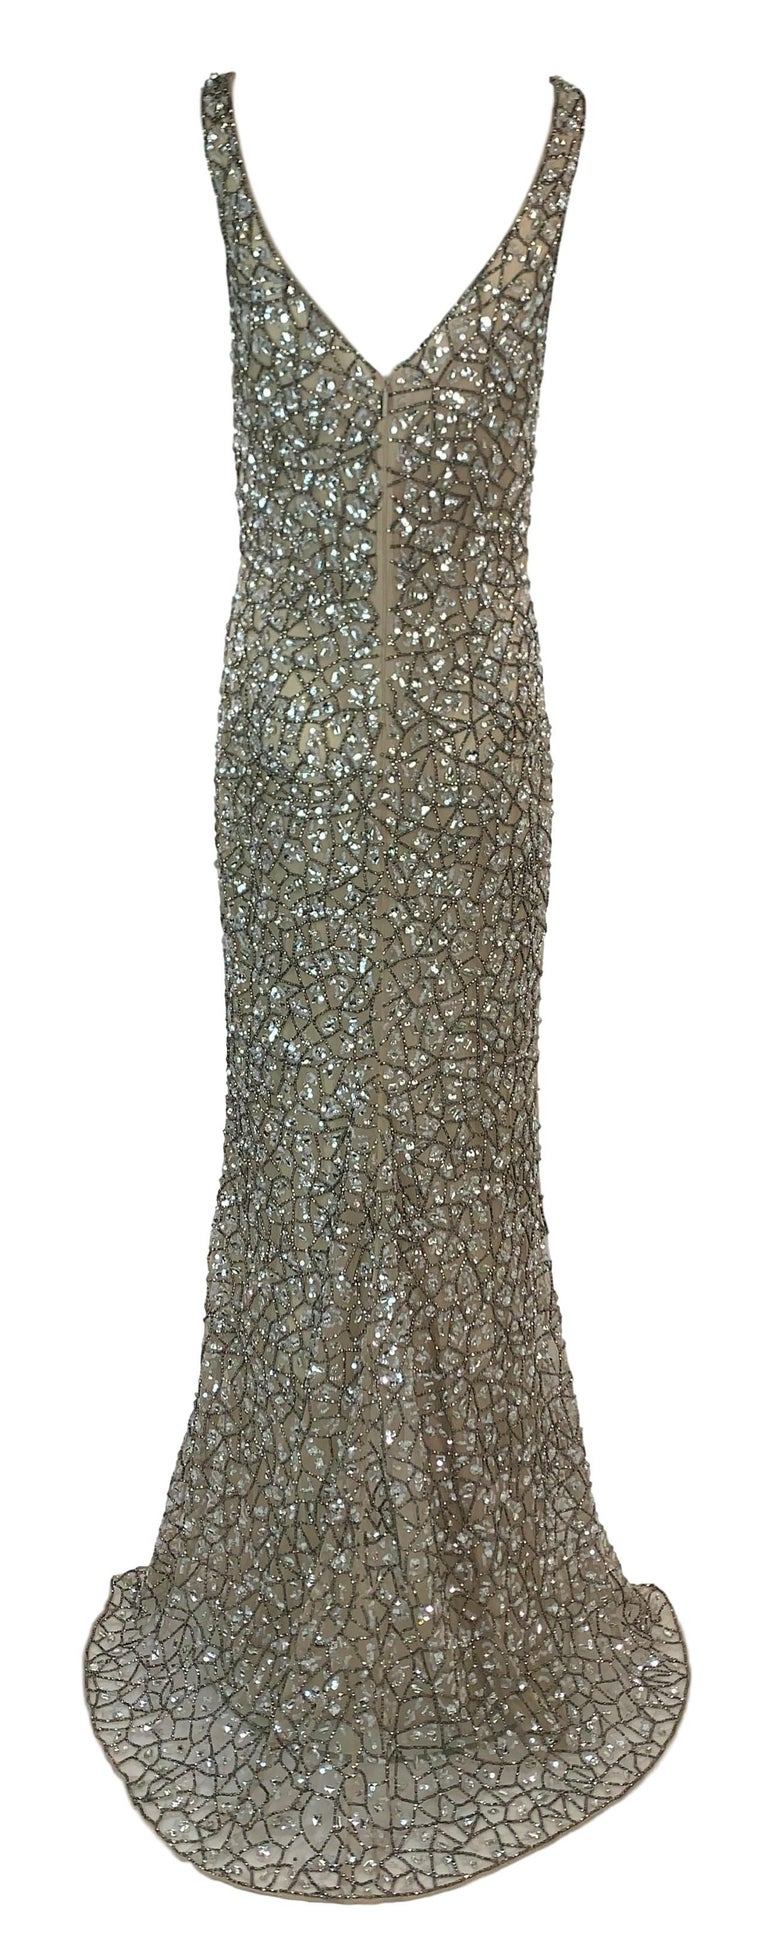 DESIGNER: S/S 2019 Roberto Cavalli  Please contact for more information and/or photos.  CONDITION: Unworn- comes with tags. May have minor bead loss- we looked over the entire dress and did not find any but this dress is completely covered so we may